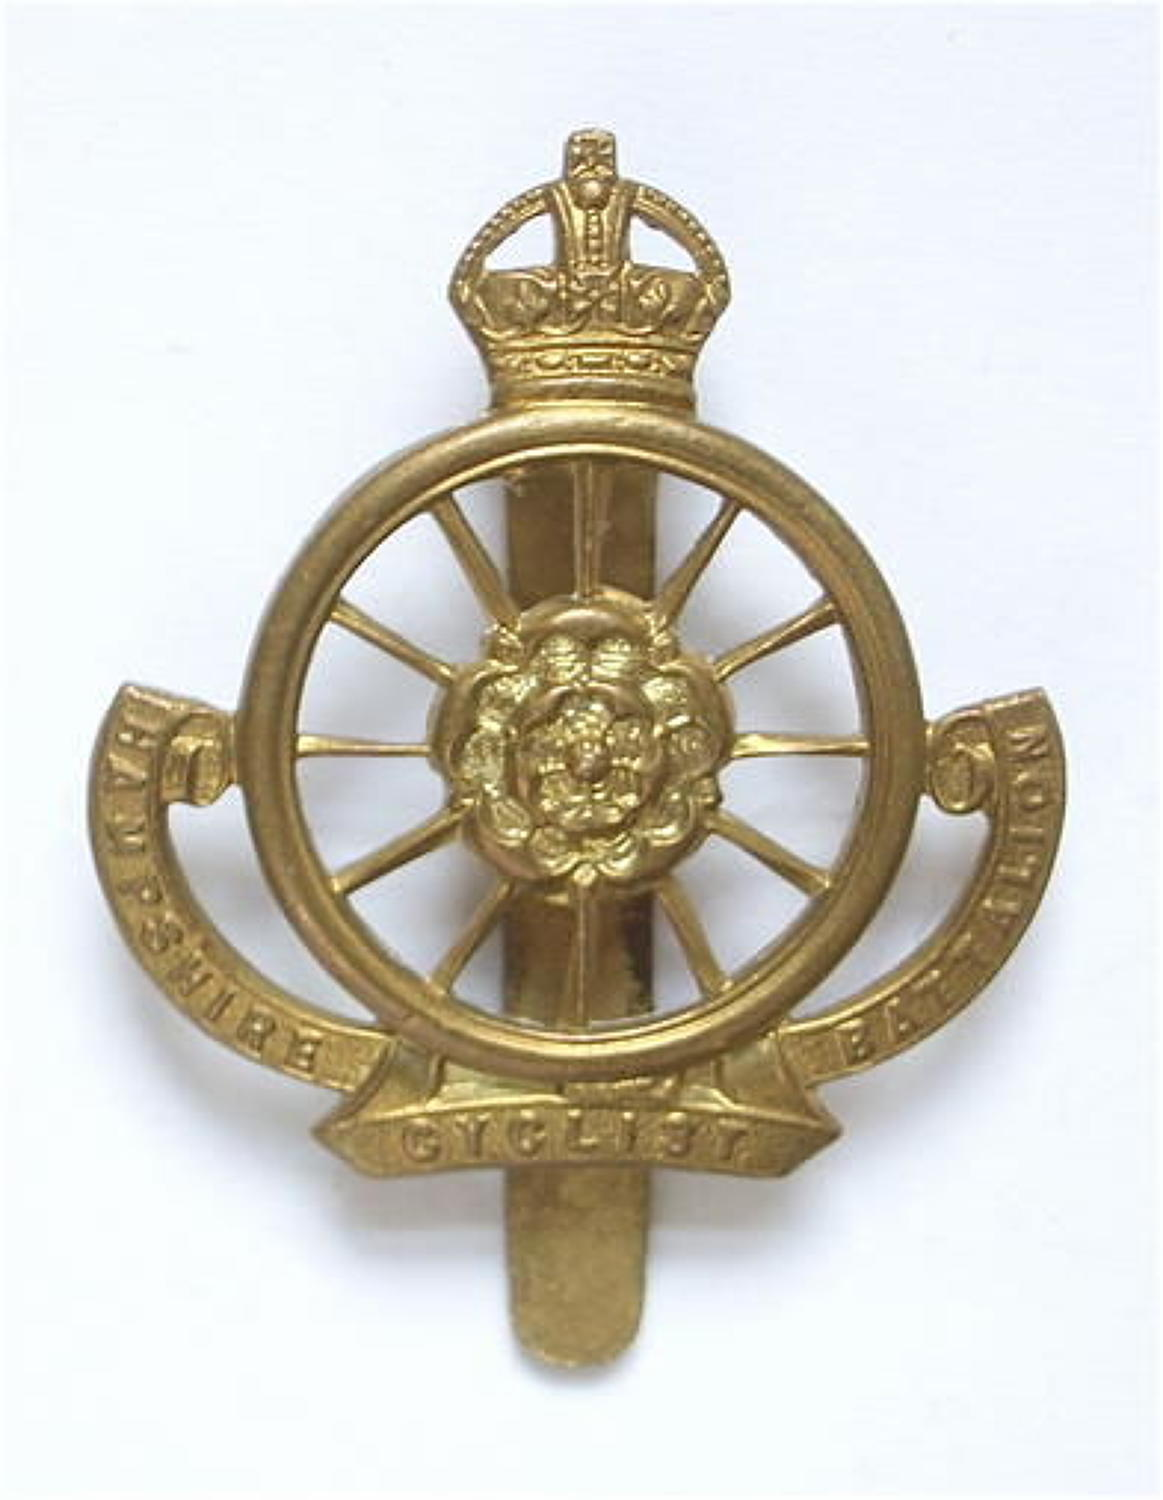 9th (Cyclist) Bn. Hampshire Regiment Ww1 OR's cap badge circa 1911-2